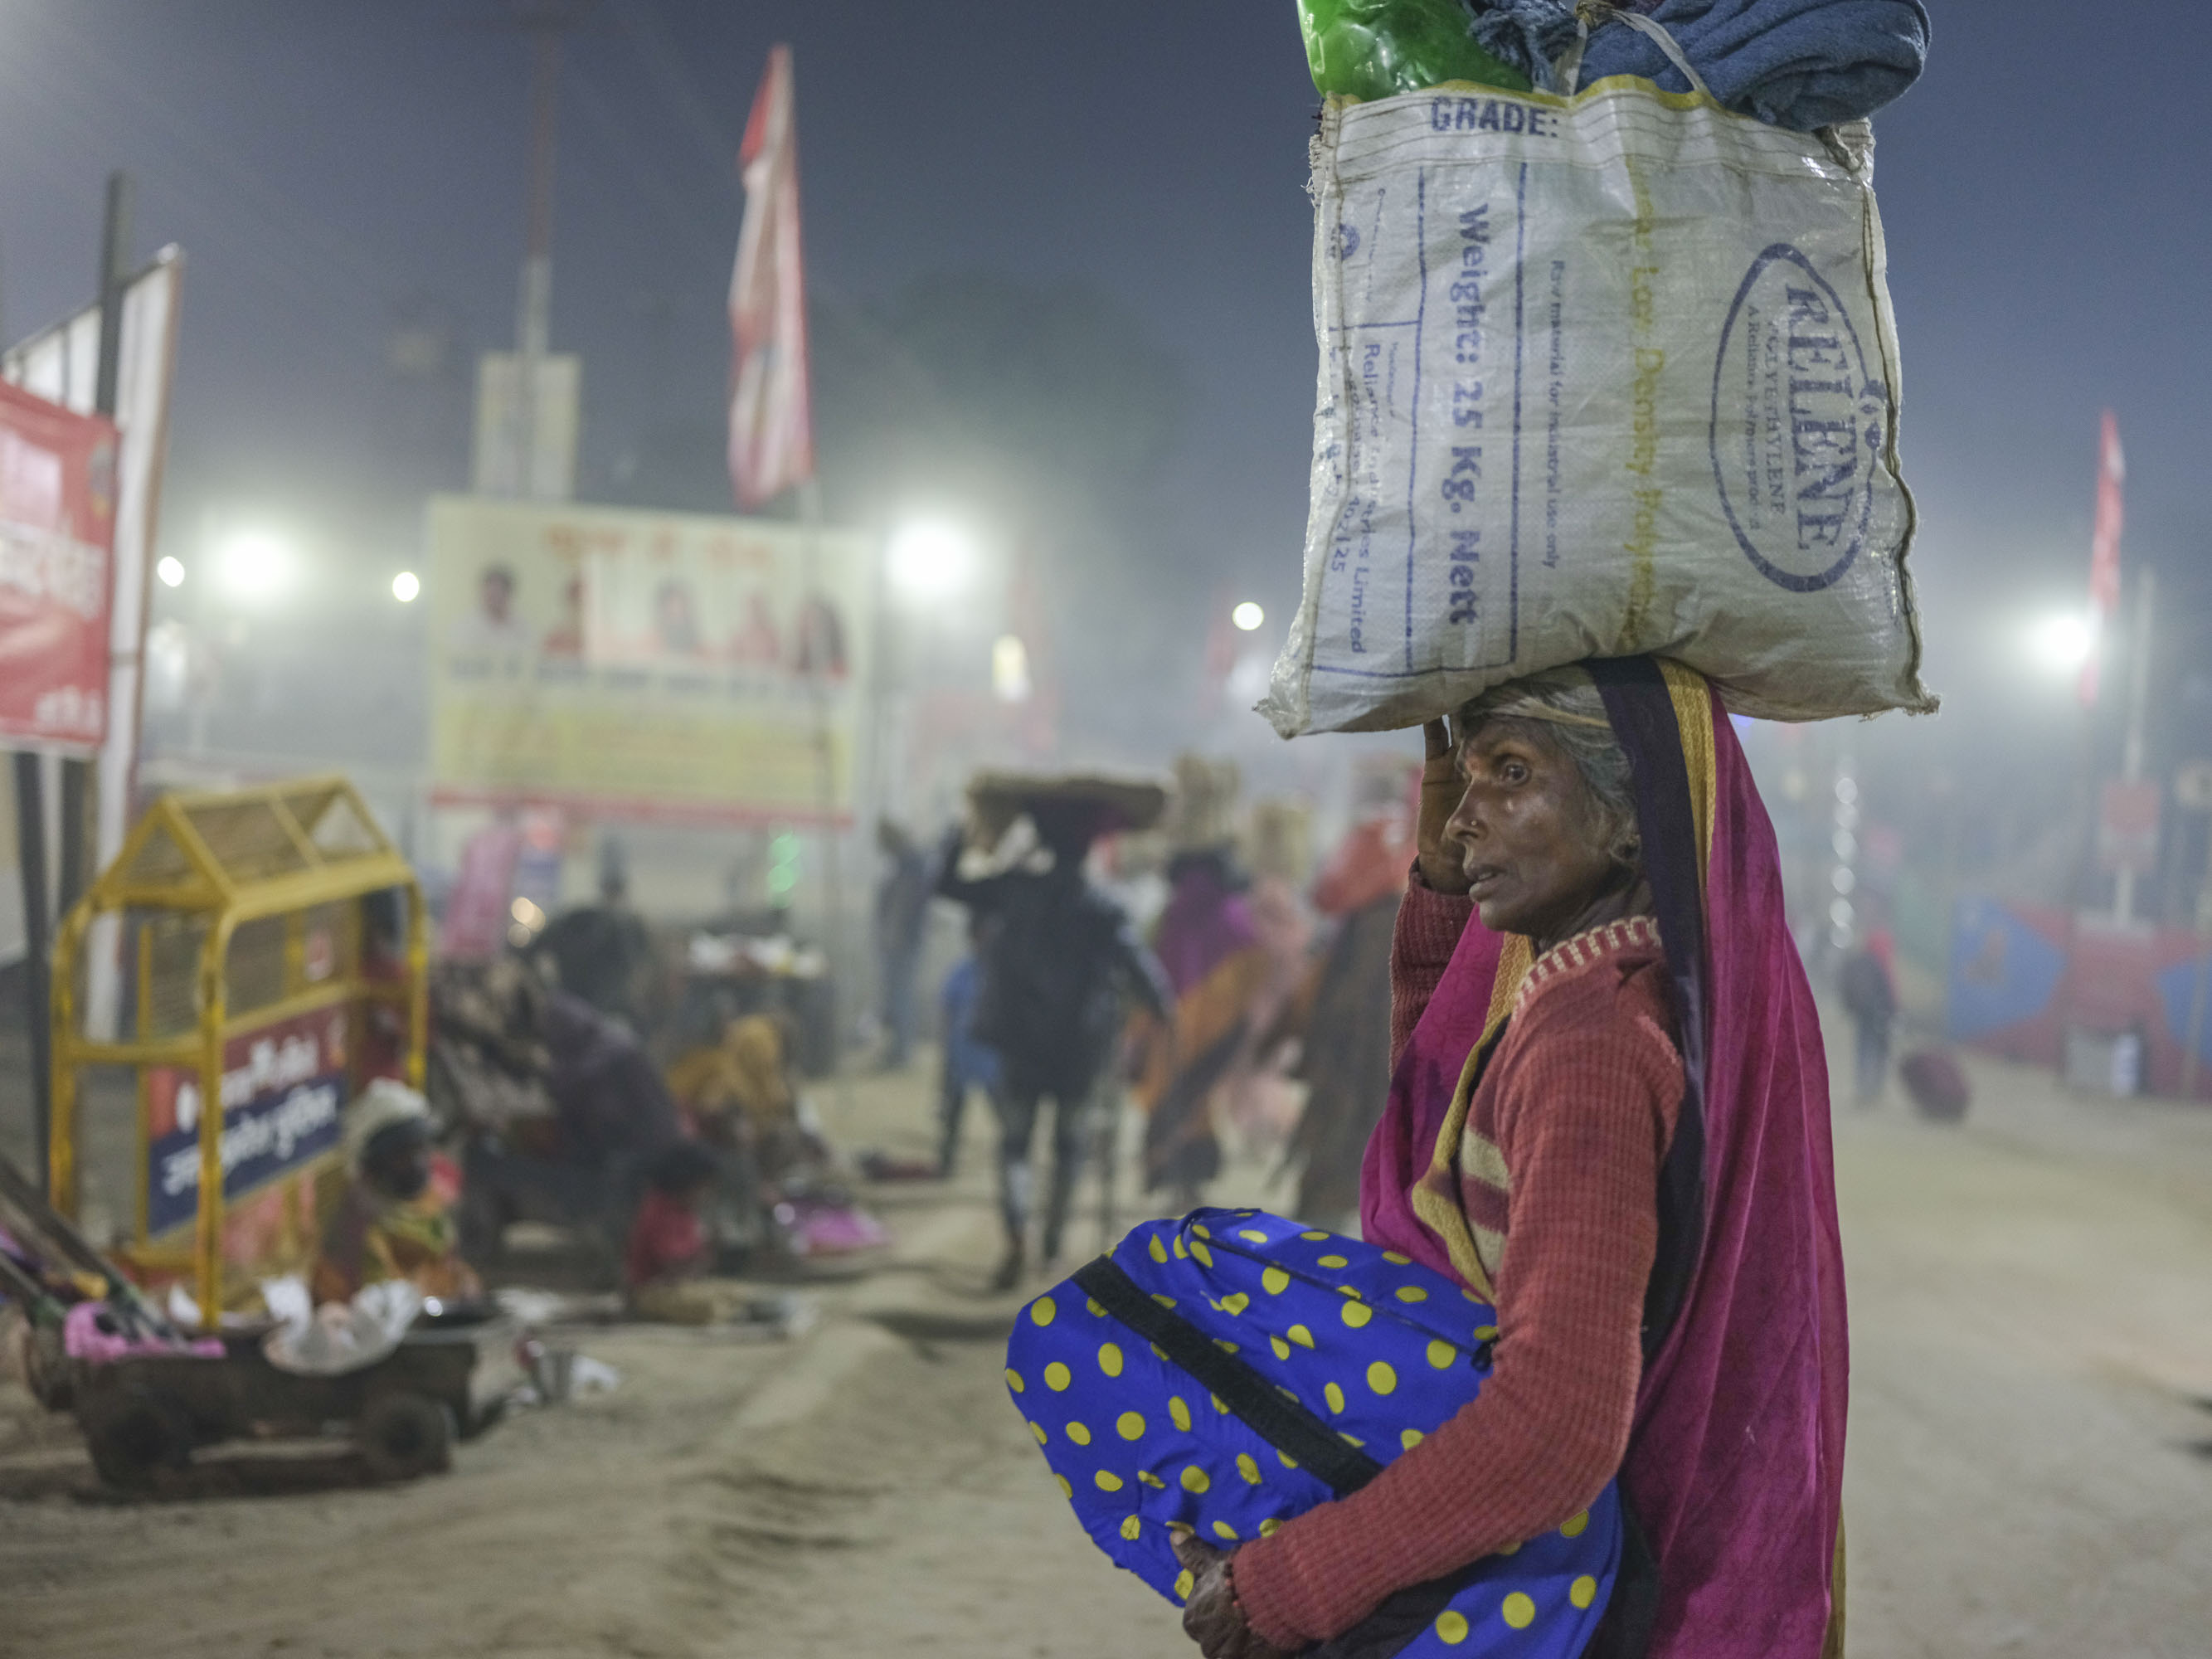 night walk life pilgrims Kumbh mela 2019 India Allahabad Prayagraj Ardh hindu religious Festival event rivers photographer jose jeuland photography